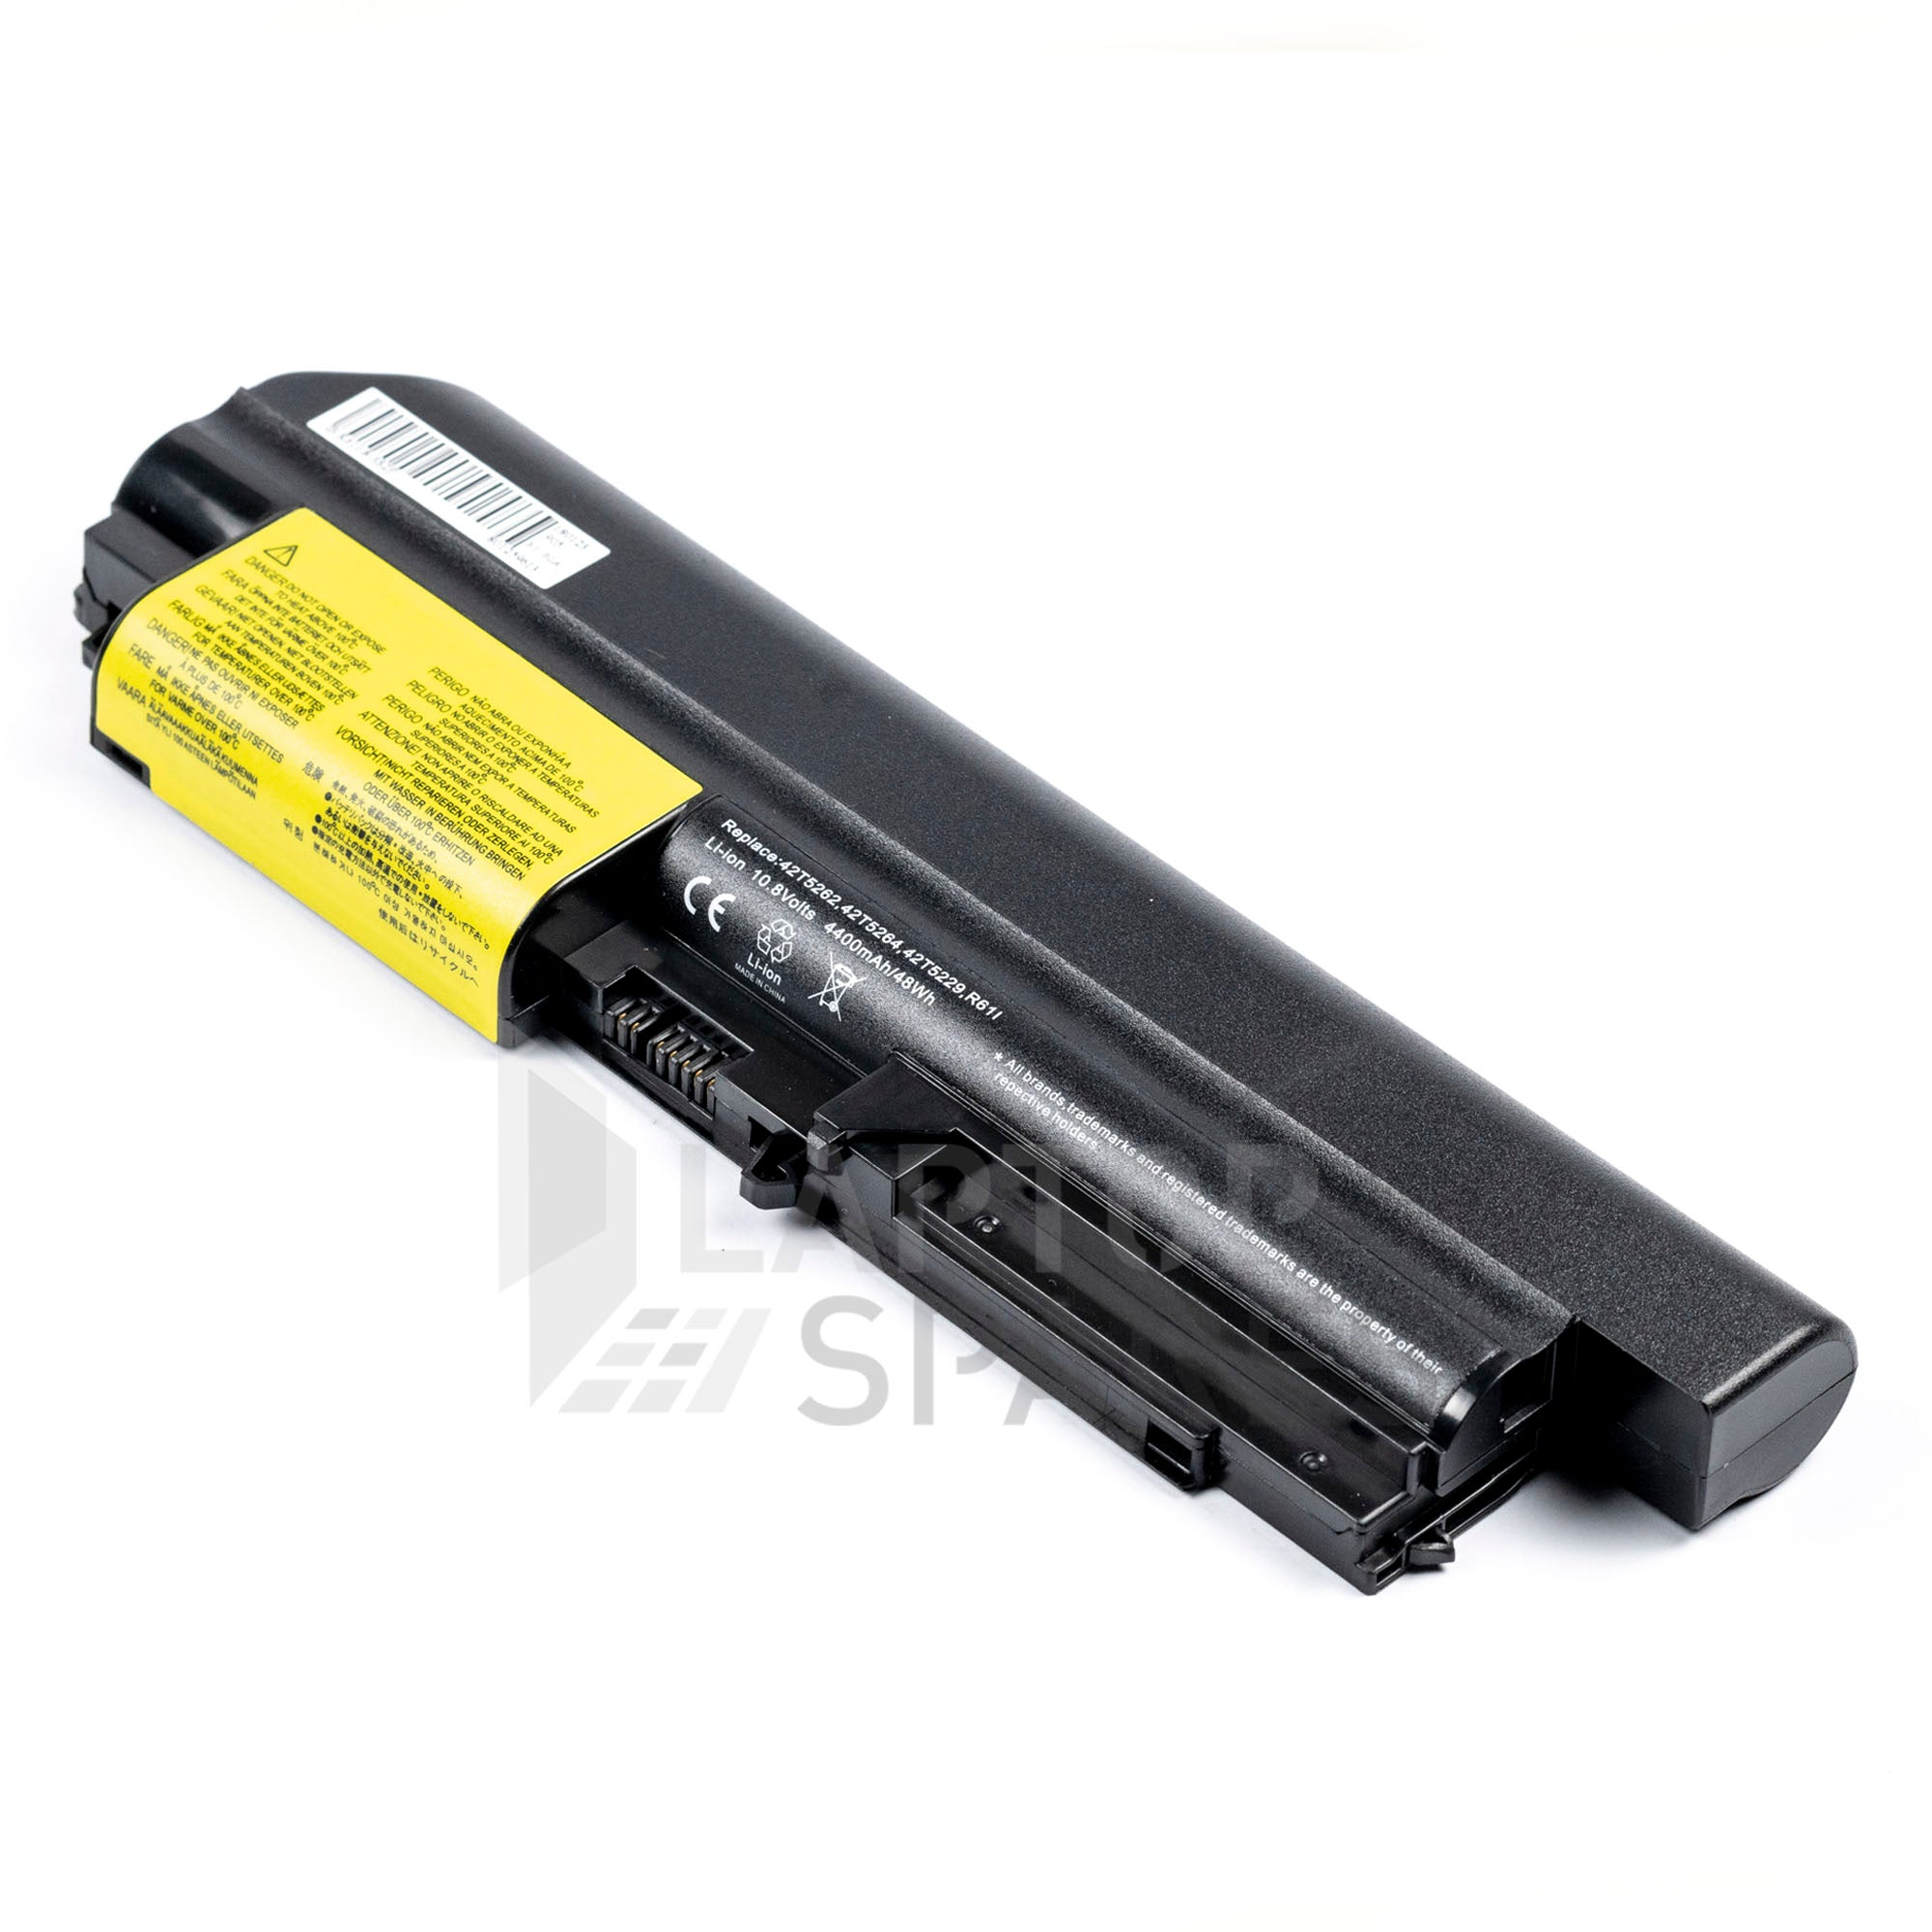 Lenovo ThinkPad R400, T400 4400mAh 6 Cell Battery